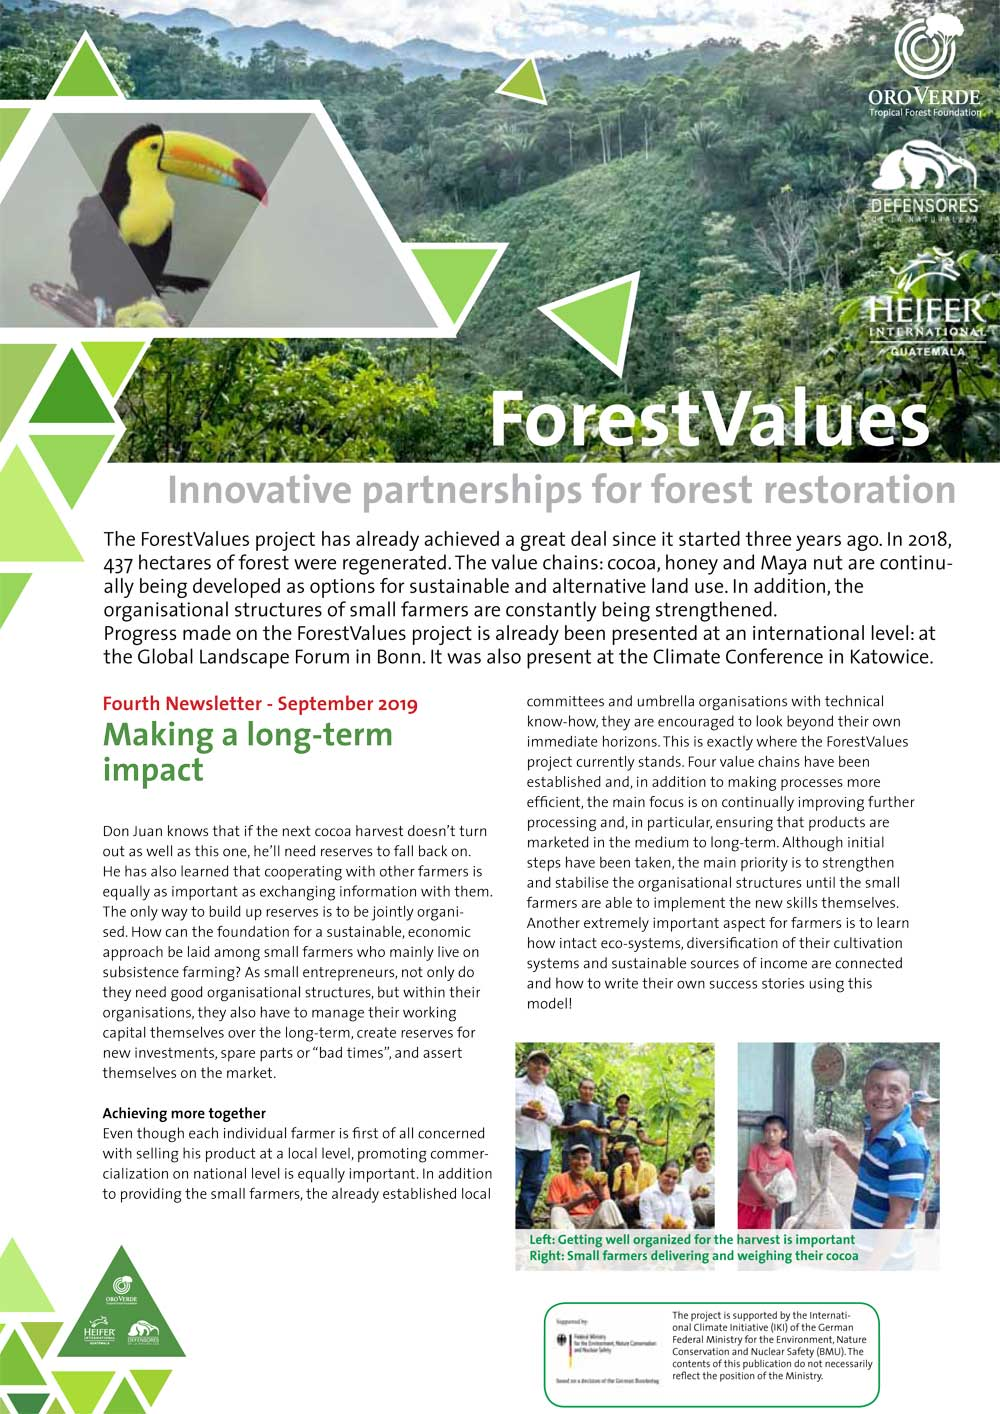 ForestValues - News